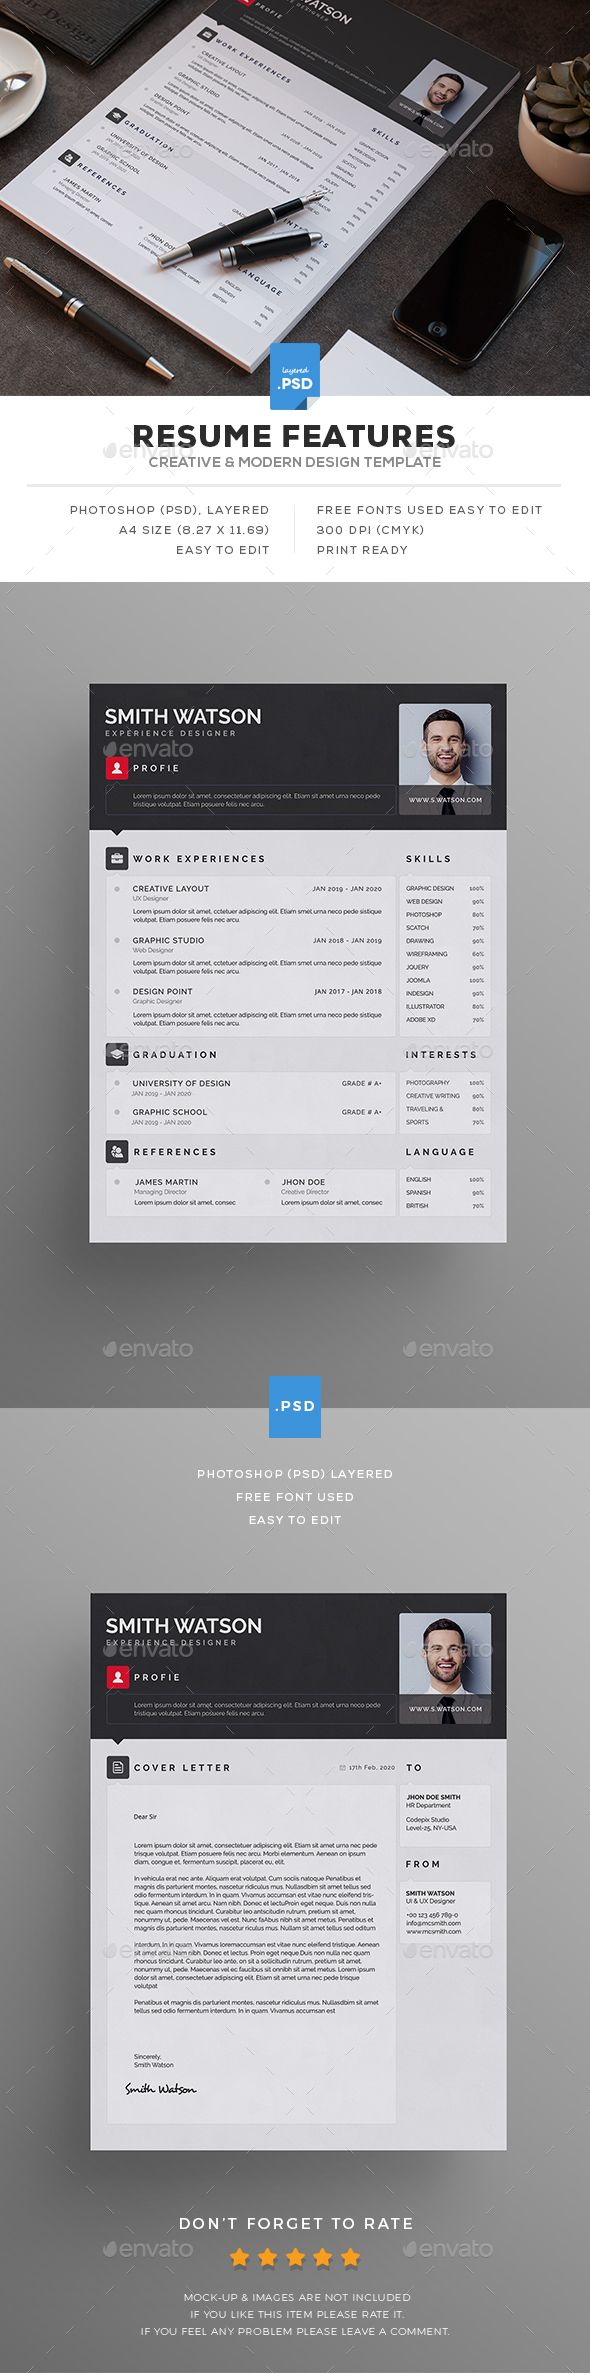 best images about resume cover letter resume photoshop psd resume print ready 10141